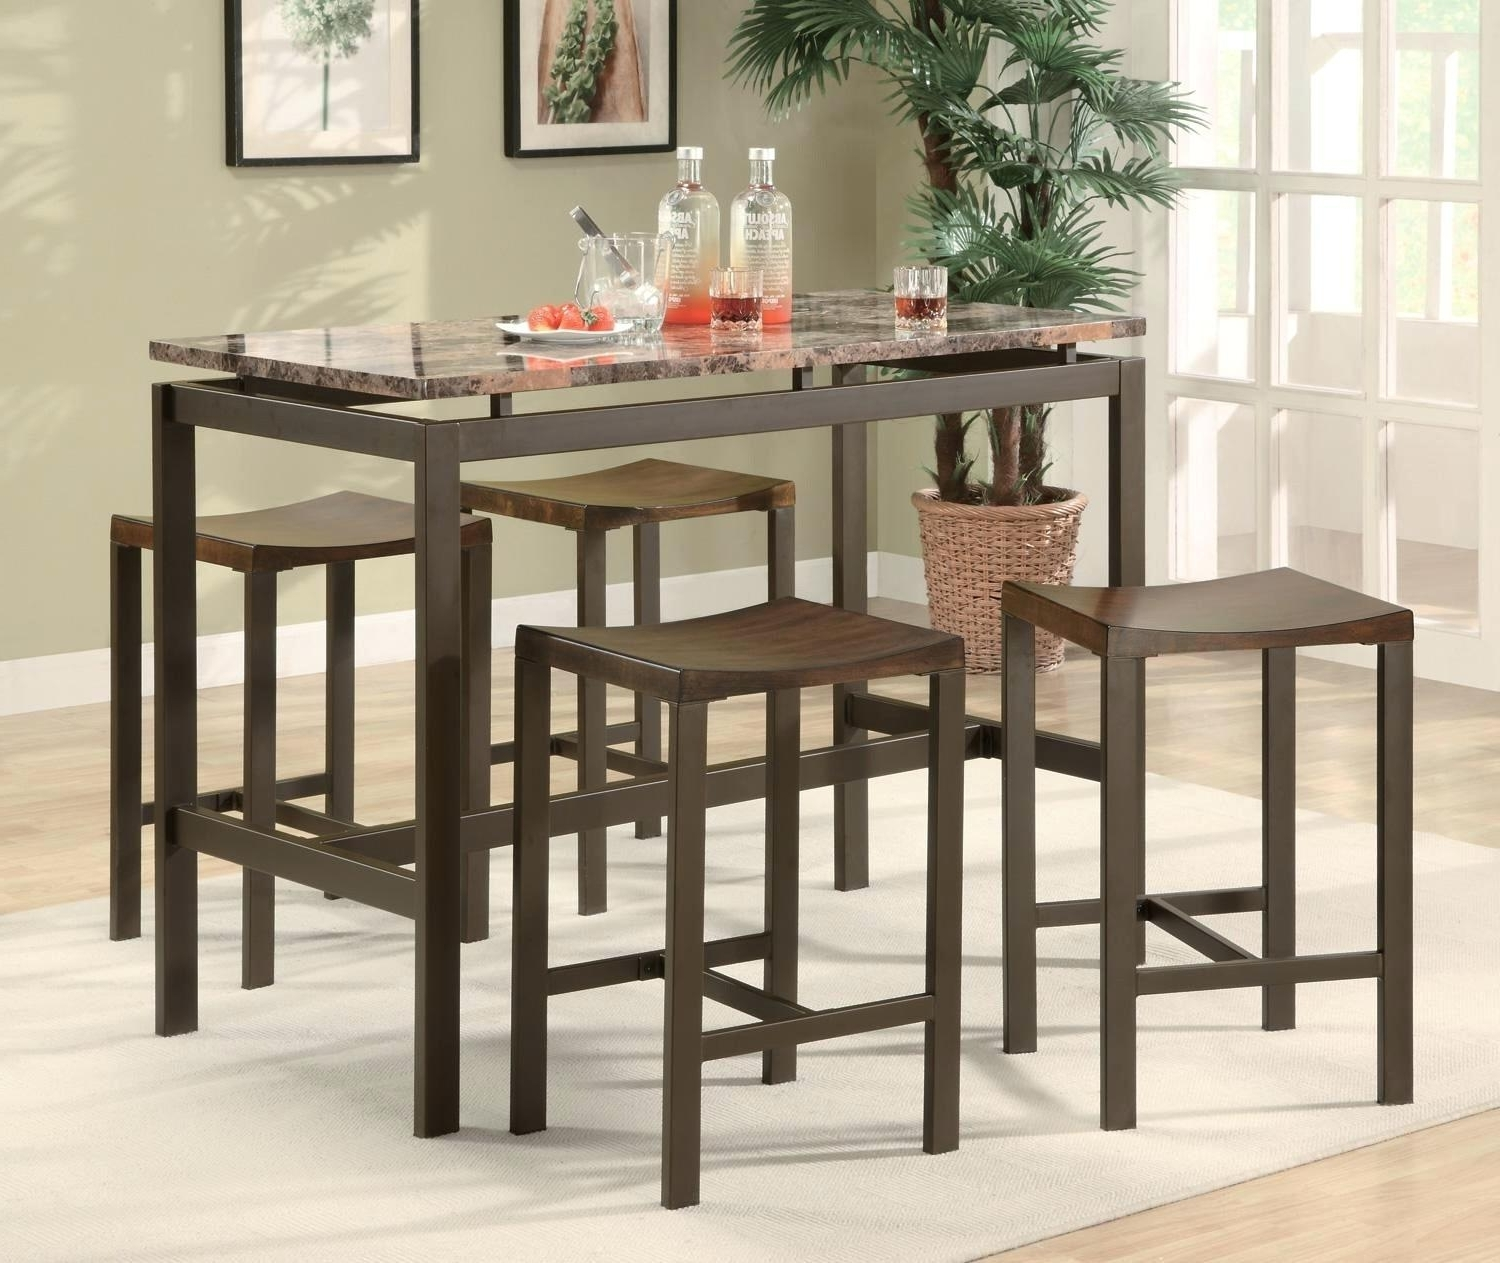 2018 Hyland Counter Height Dining Room Table – Ocane Throughout Hyland 5 Piece Counter Sets With Stools (View 11 of 25)